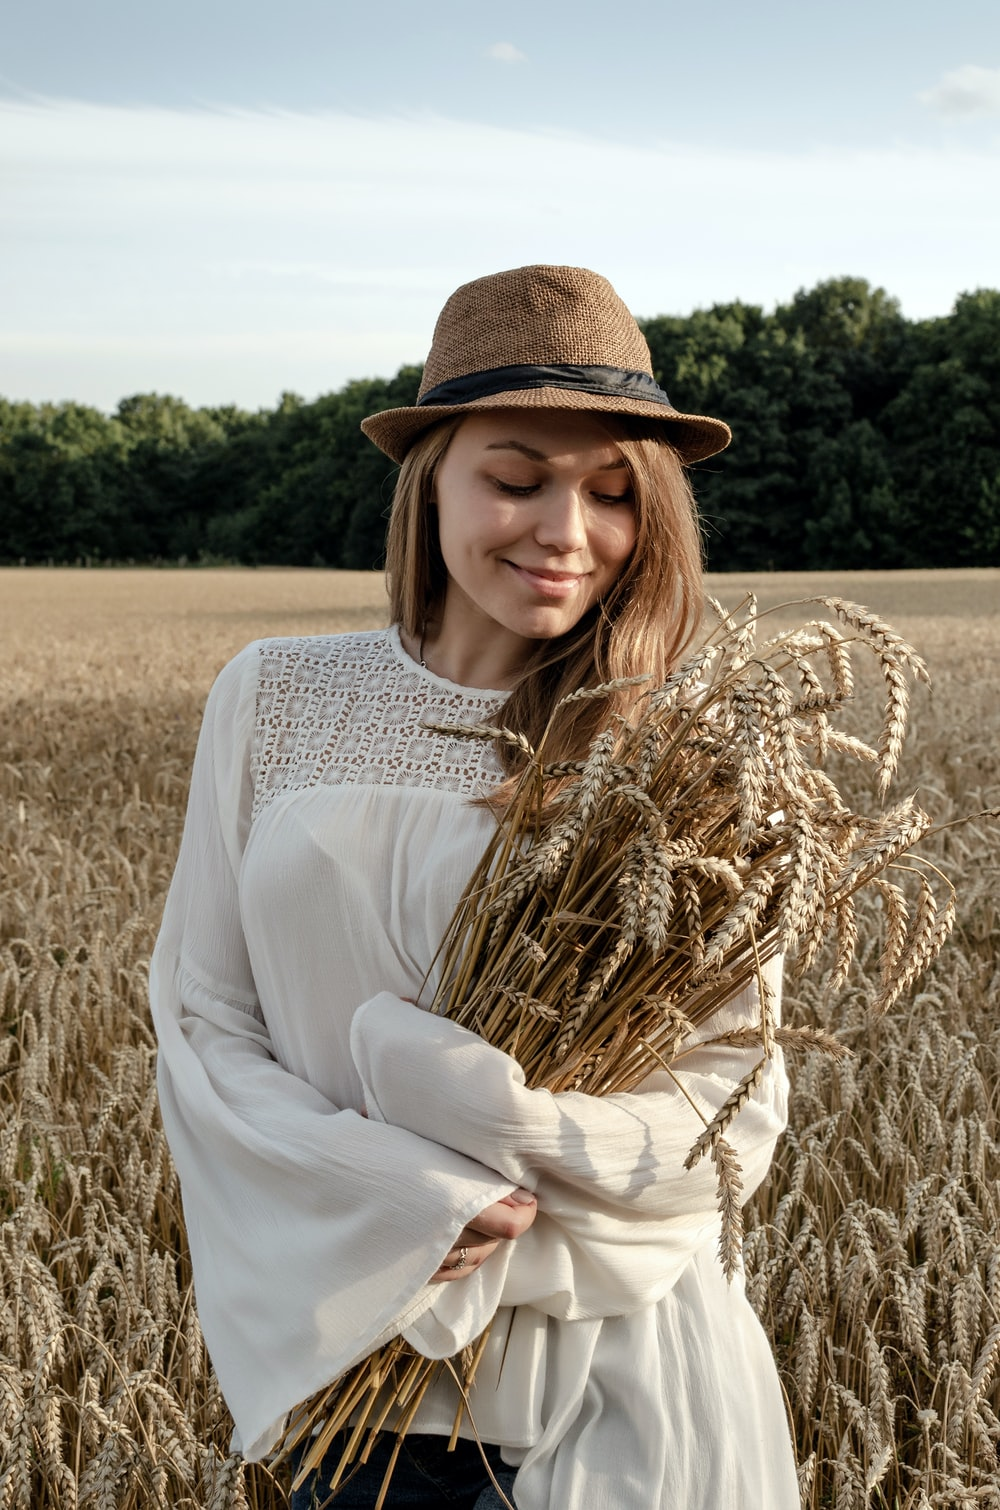 woman in white long sleeve shirt and brown hat standing on brown wheat field during daytime